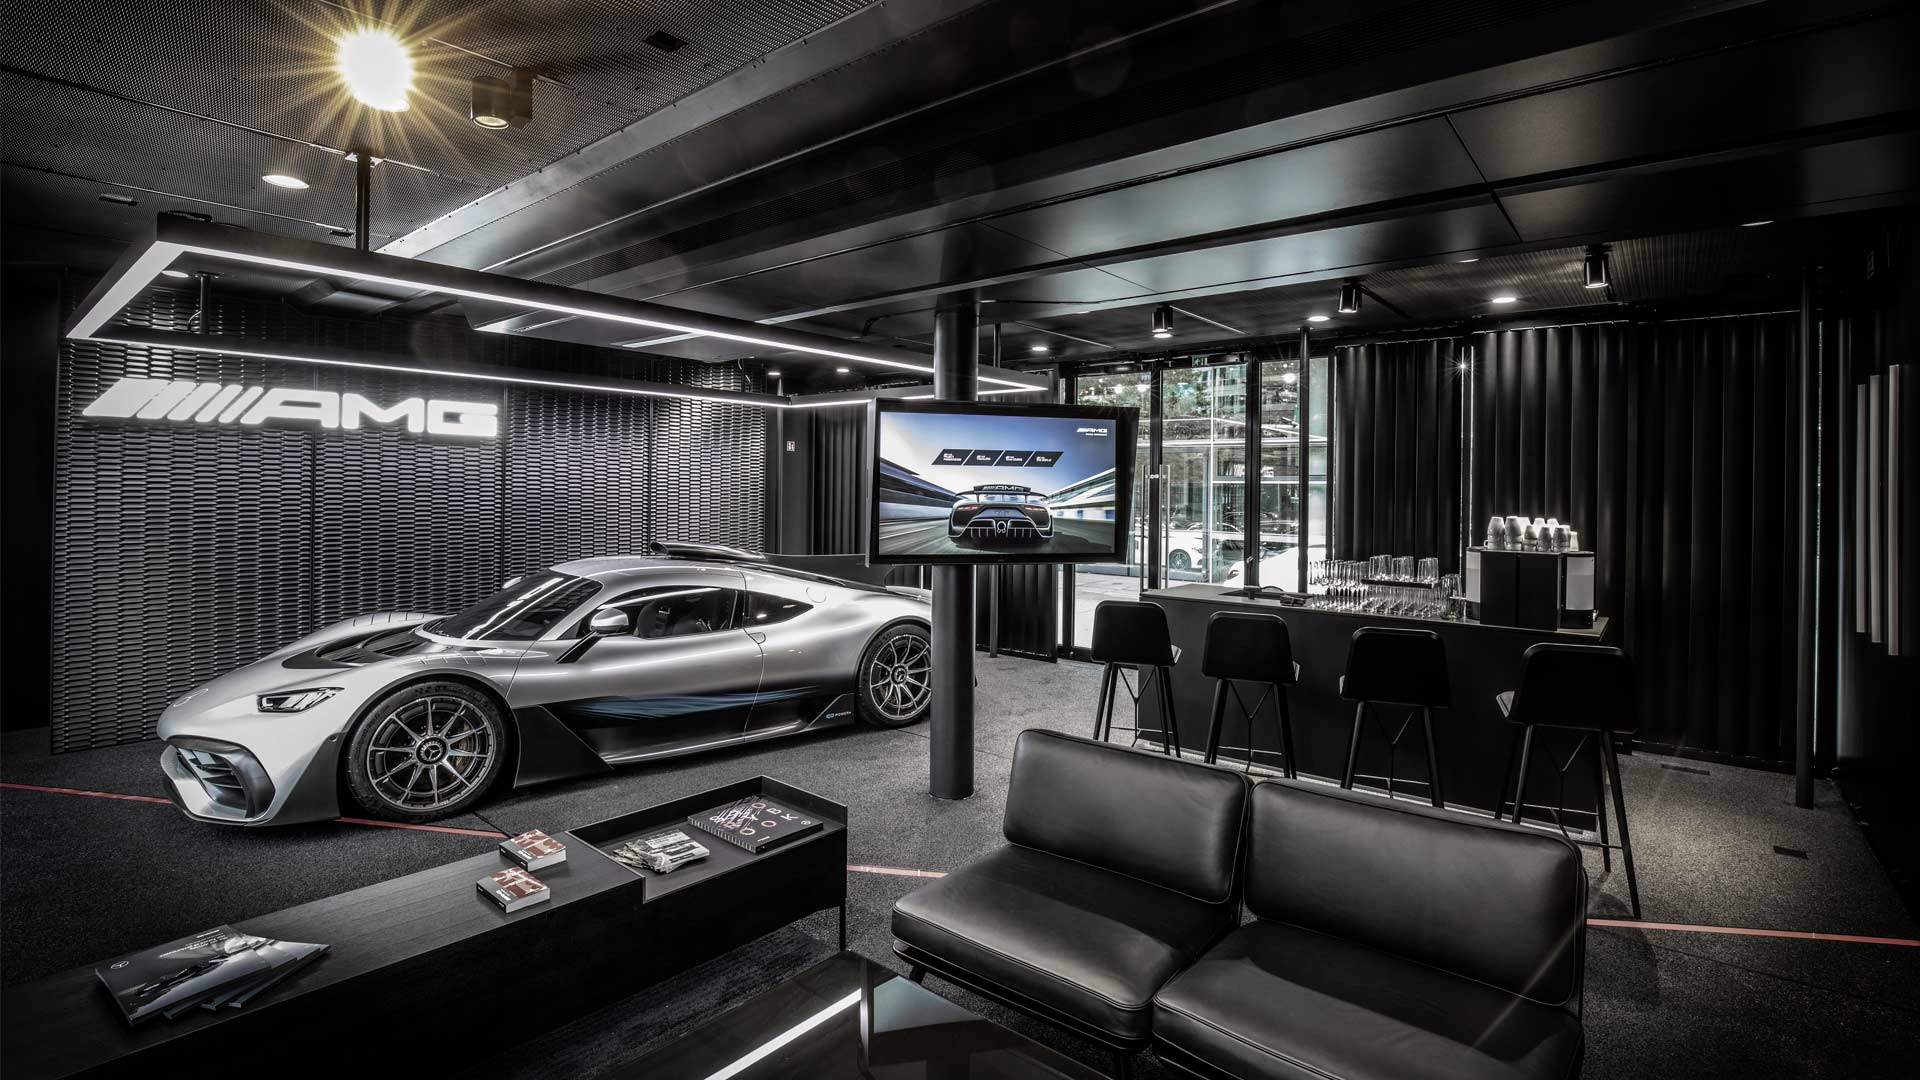 Mercedes-AMG-One-mobile-showroom-lounge